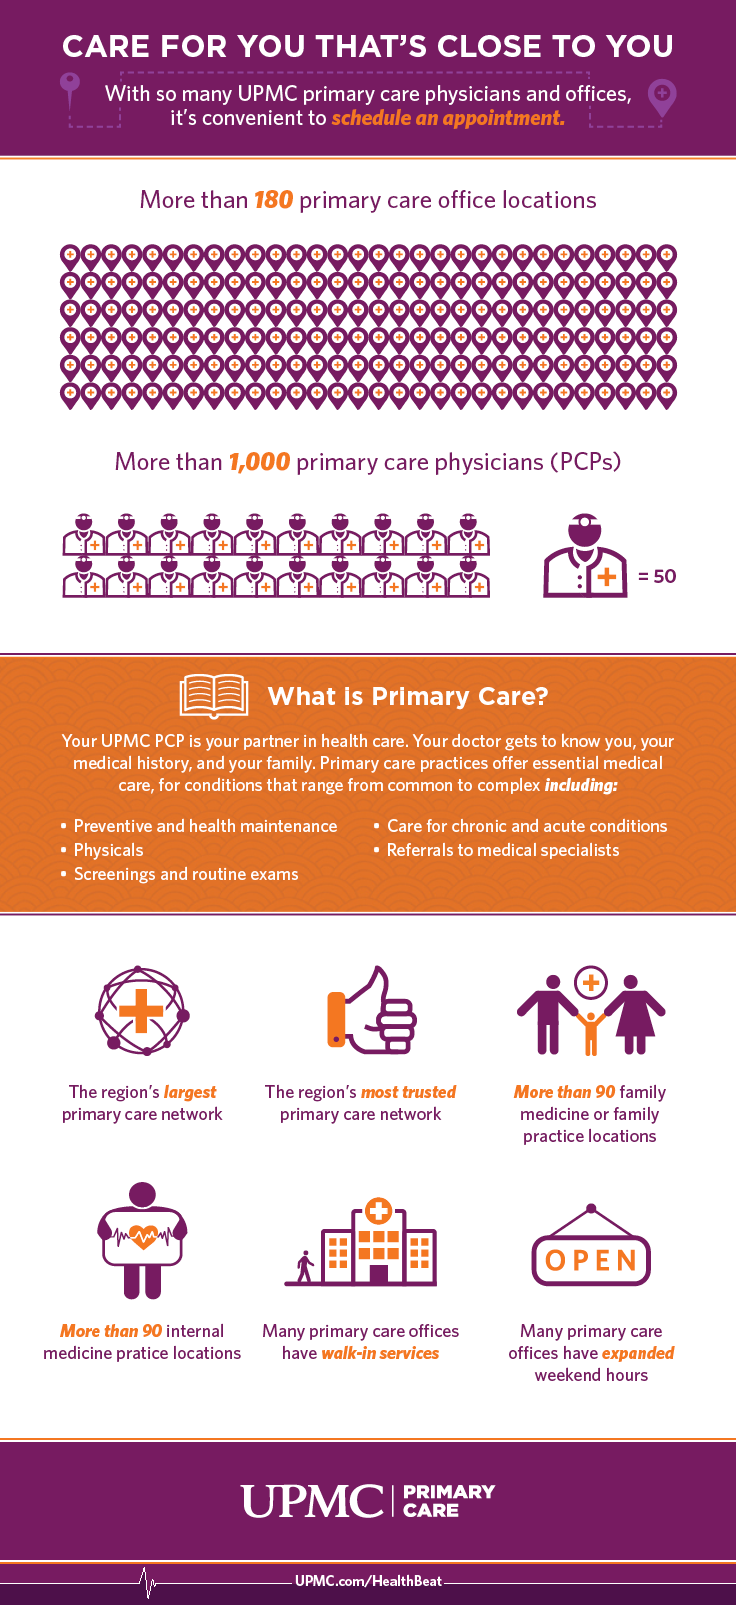 Learn more about UPMC Primary Care